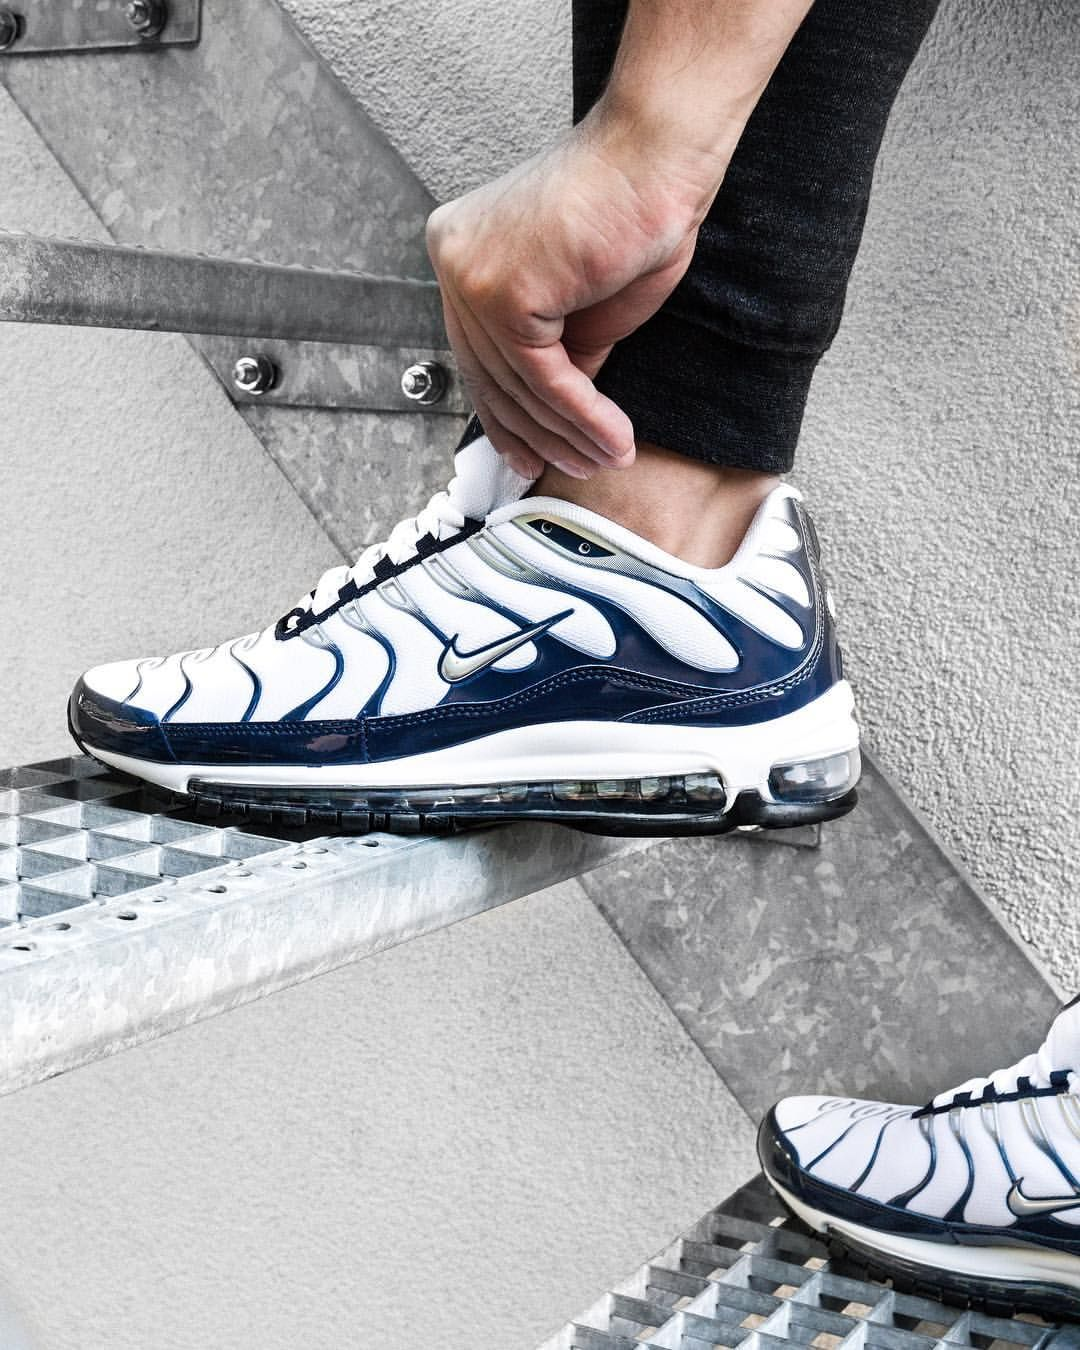 Heating the streets. The @nikesportswear #AirMax 97Tuned 1